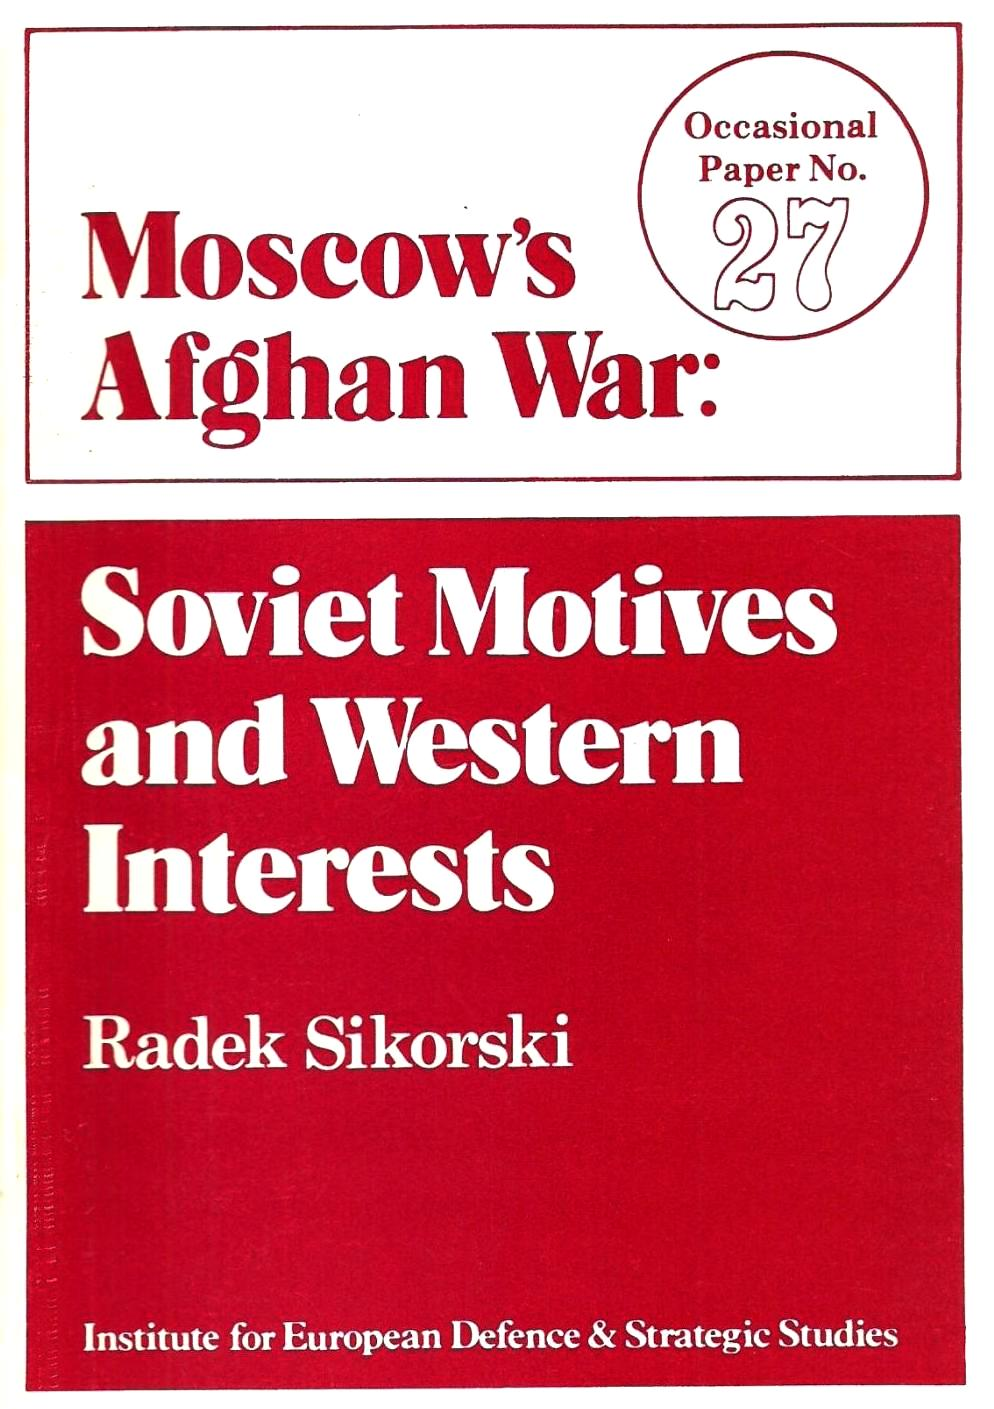 Moscow's Afghan War: Soviet Motives and Western Interests